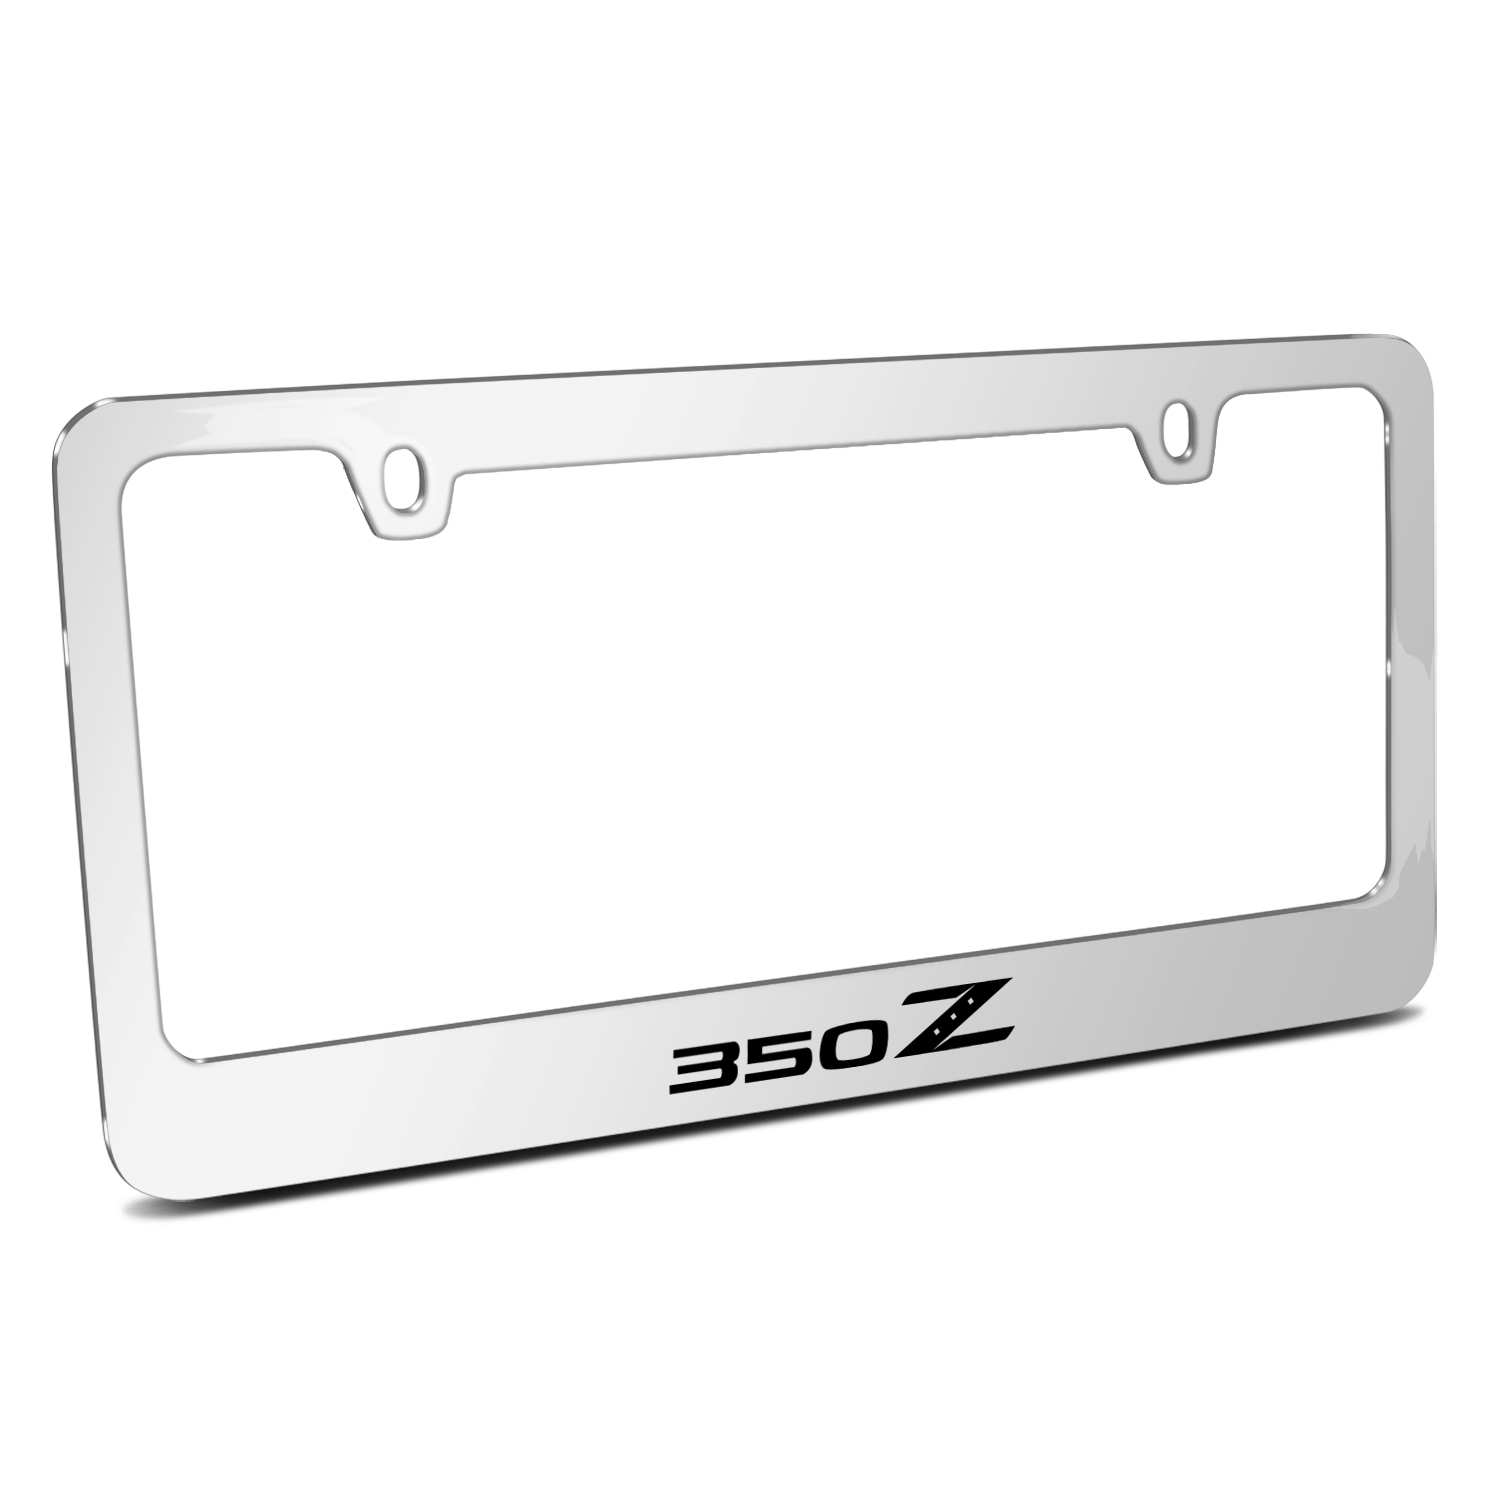 Nissan 350Z Mirror Chrome Metal License Plate Frame